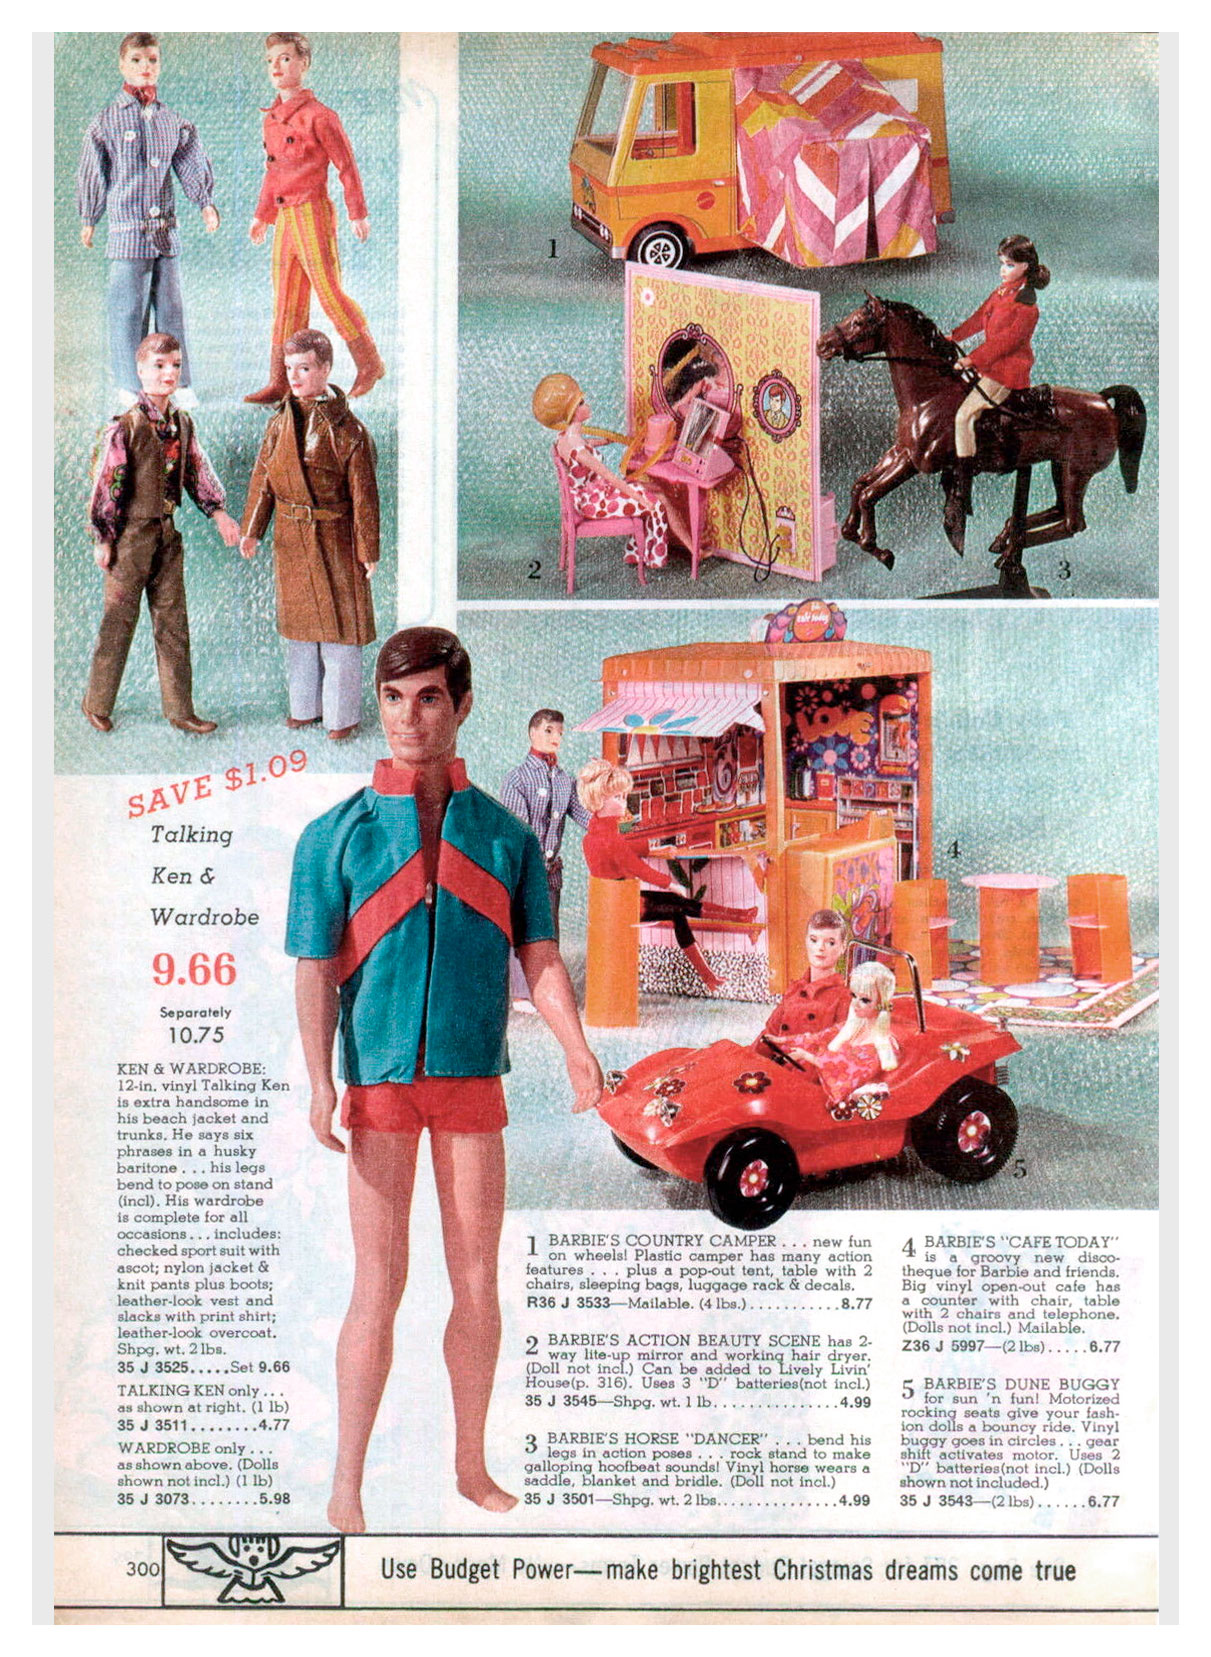 From 1971 Spiegel Christmas catalogue